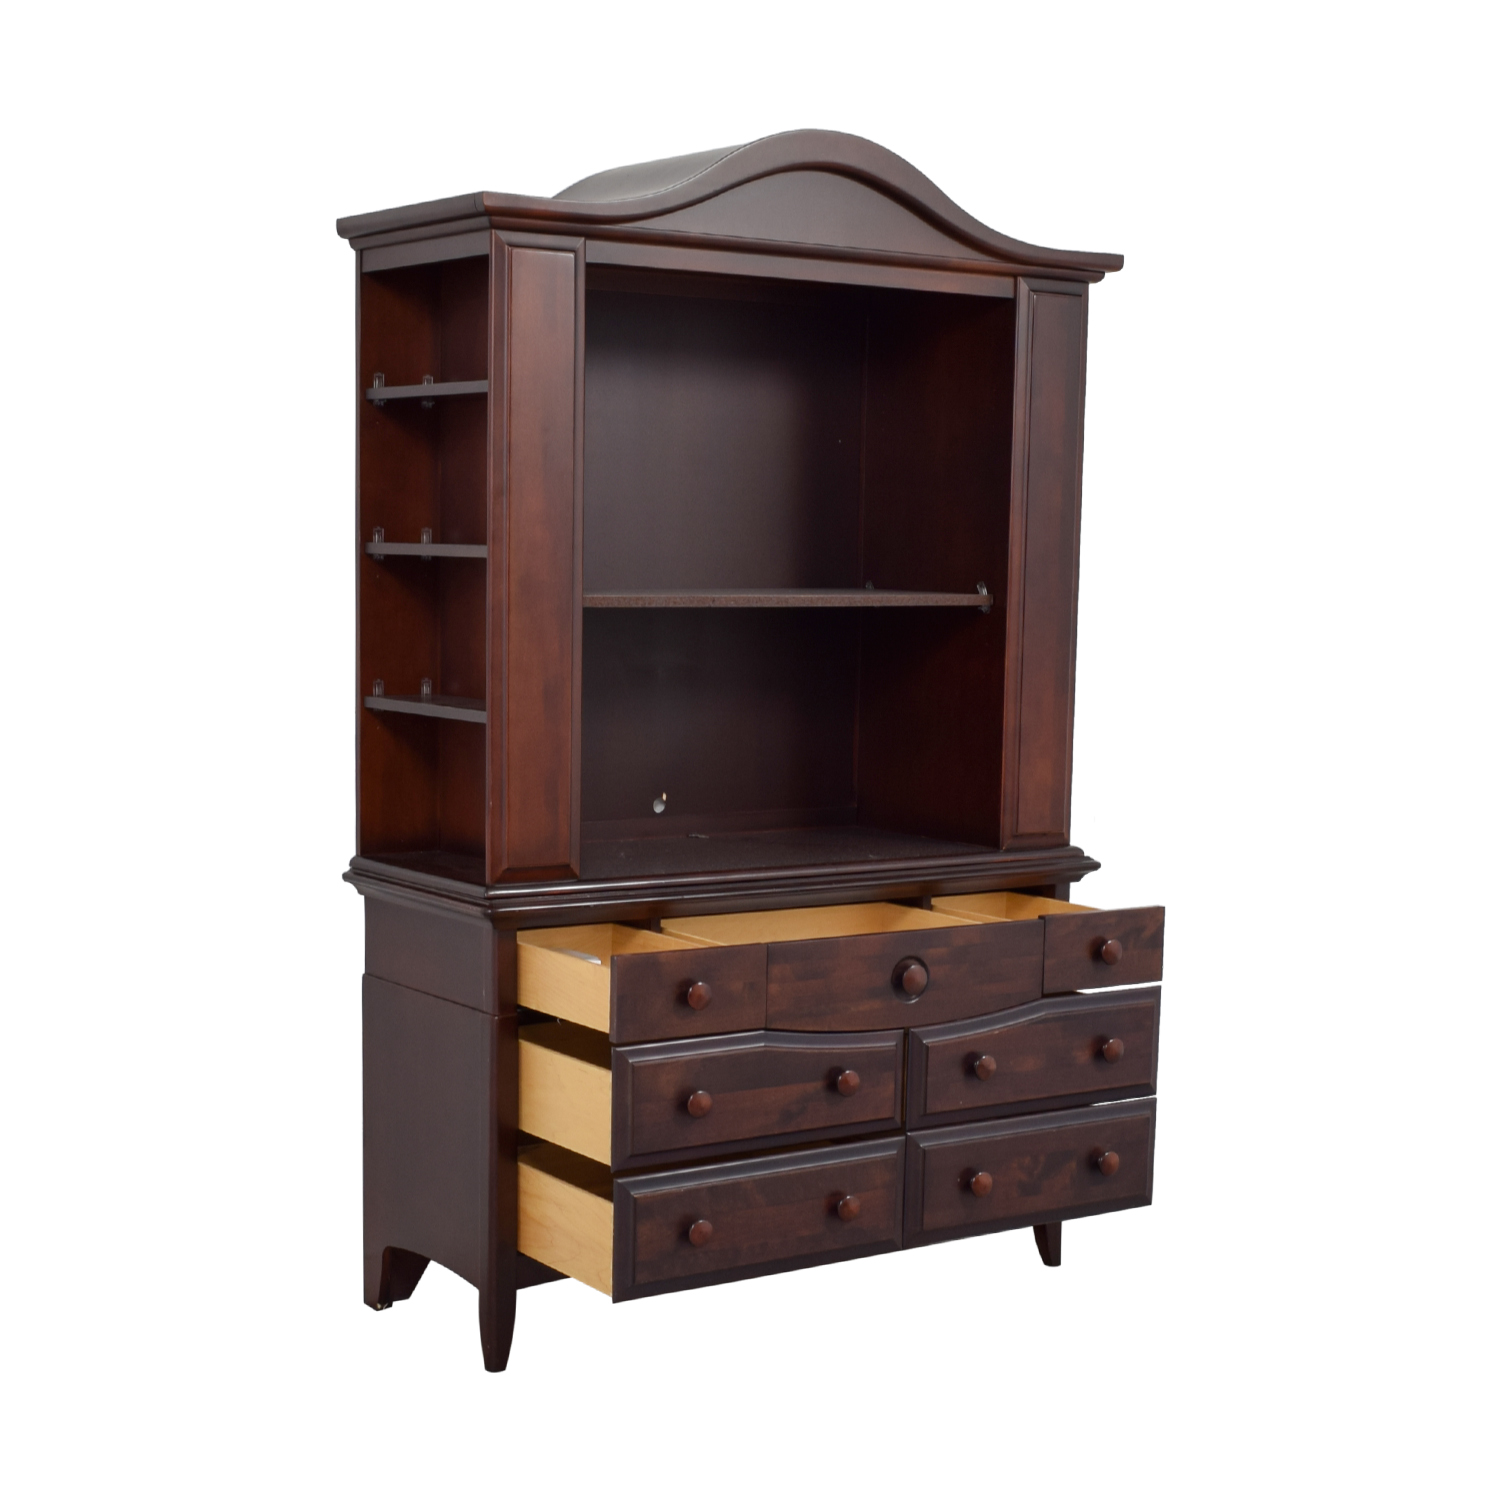 Regazzi Regazzi Morigeau-Lepine Sever Drawer Dresser and Hutch with Front and Side Shelves dimensions